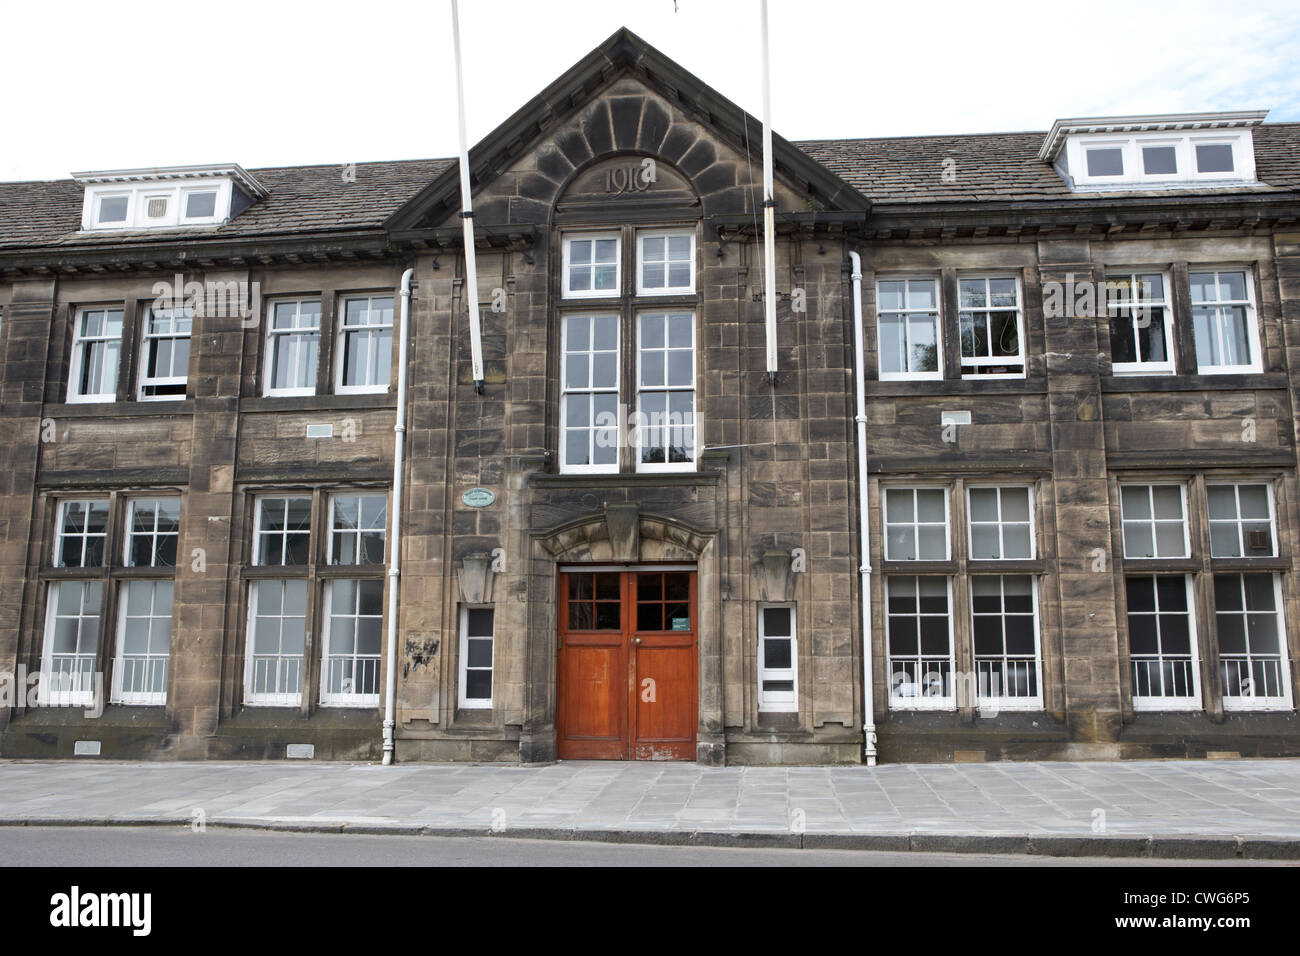 1910 laboratory and offices on inverleith row of royal botanic garden edinburgh, scotland, uk, united kingdom - Stock Image